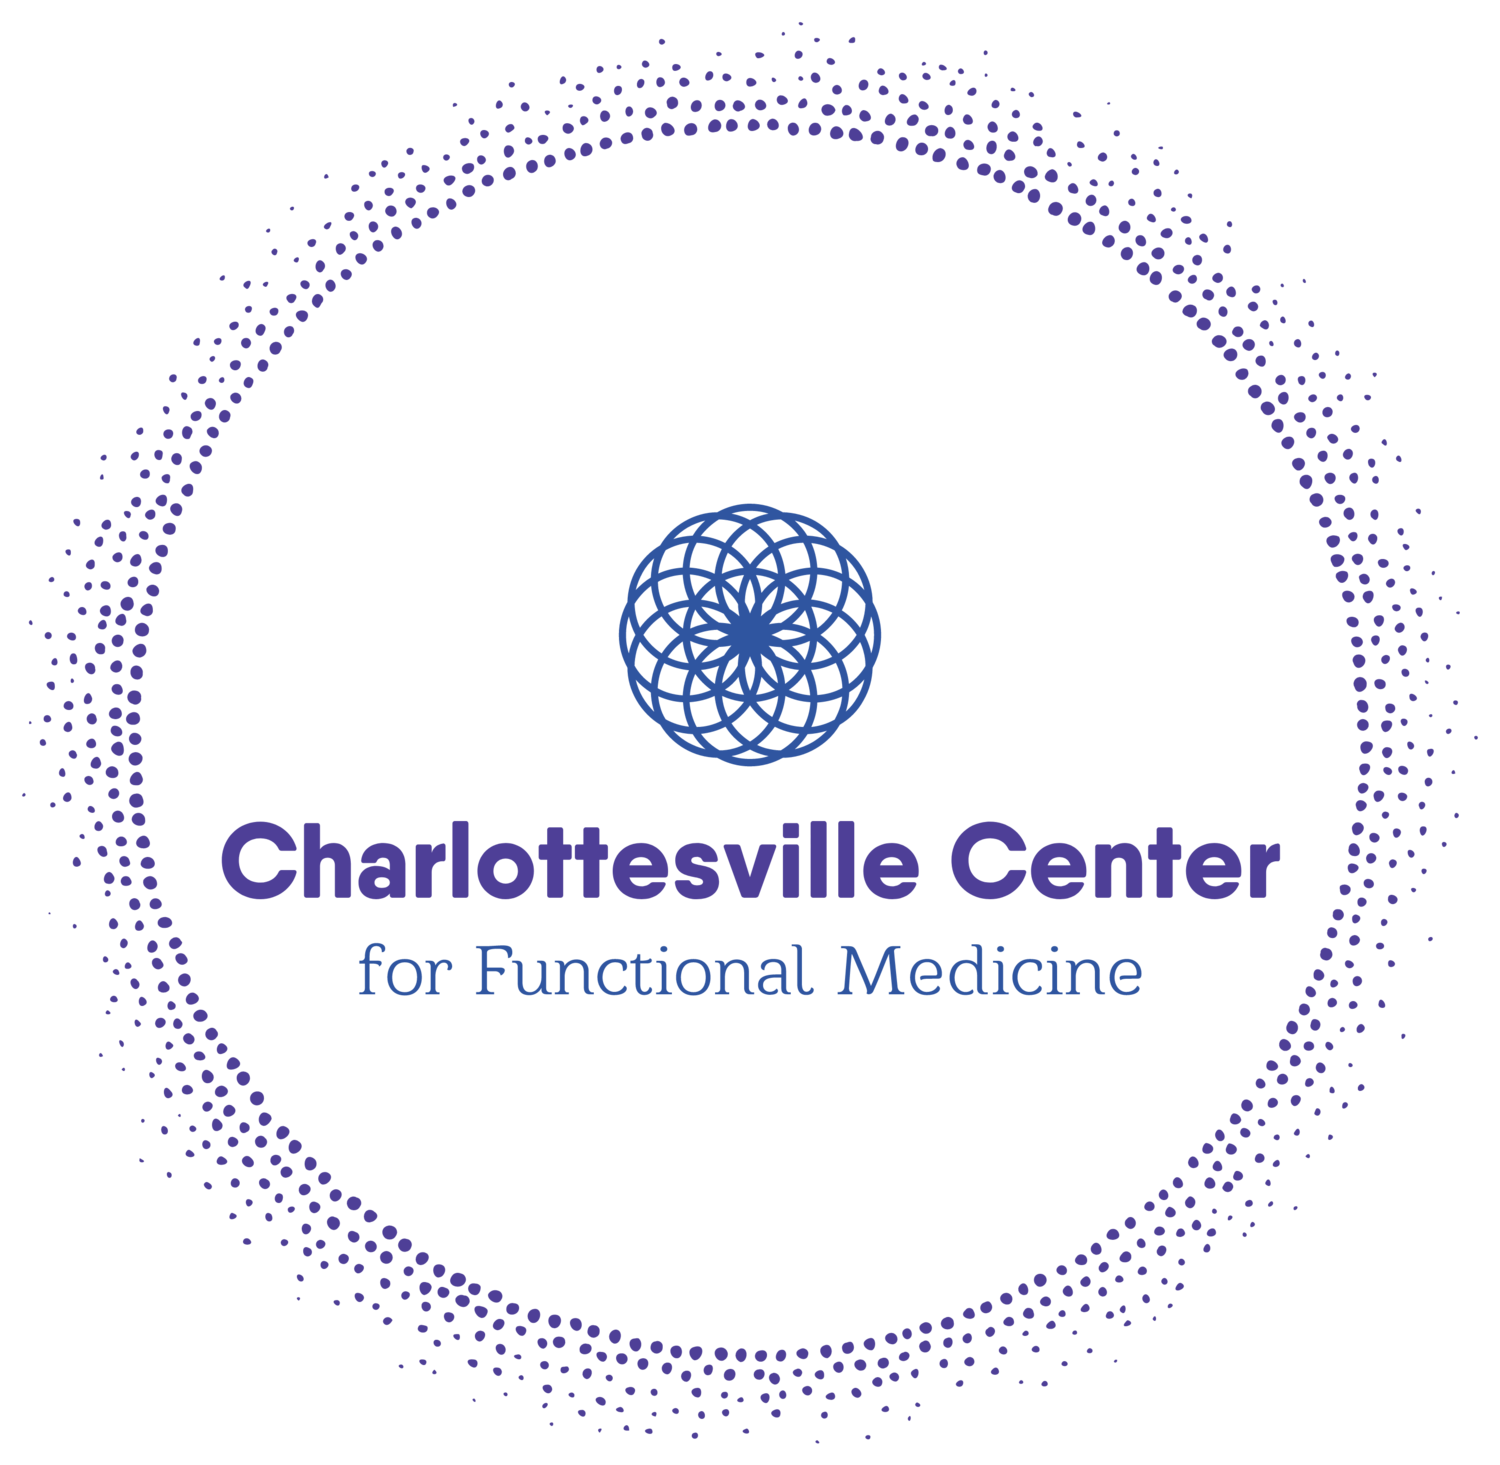 Charlottesville Center for Functional Medicine